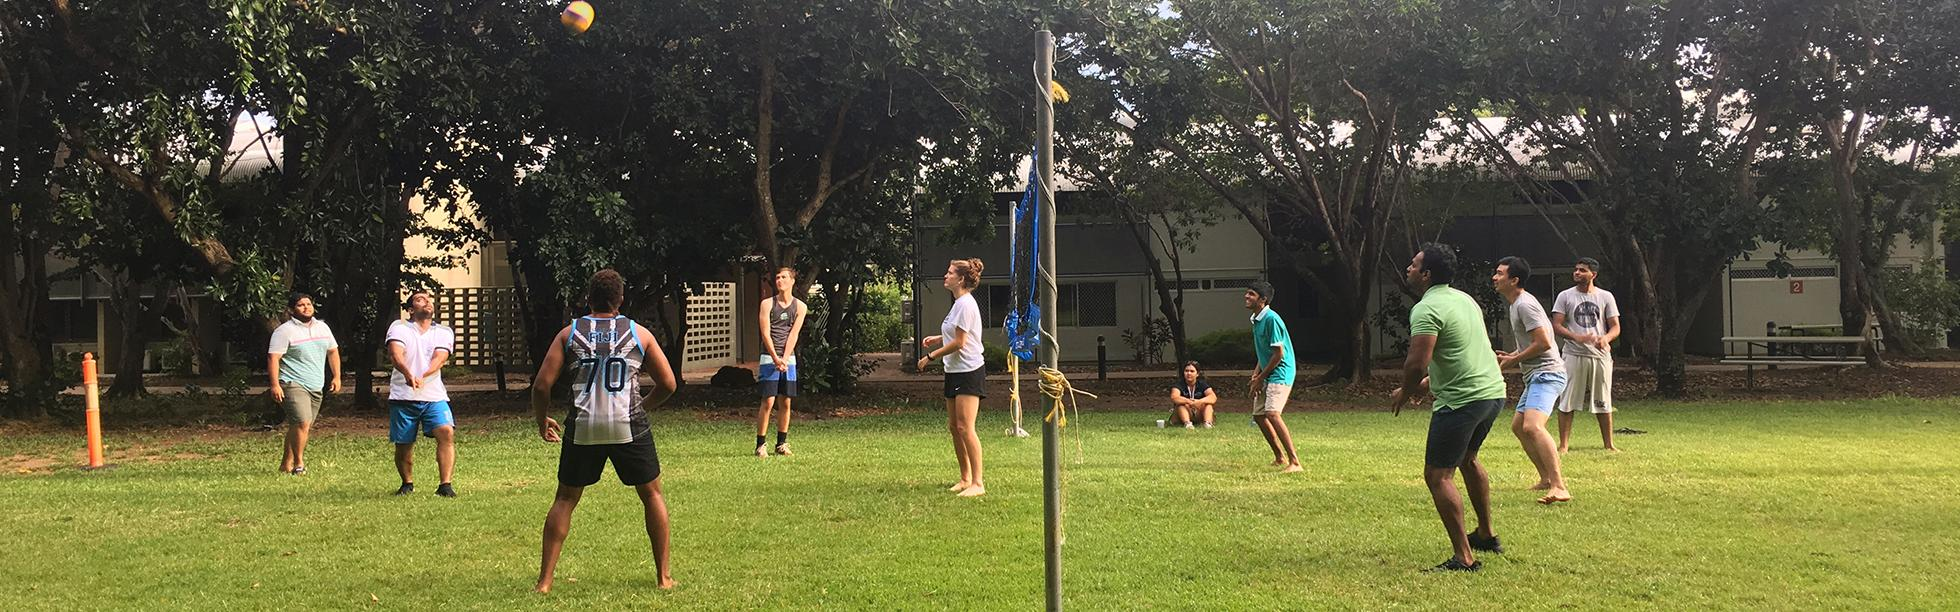 Volleyball on the Lawns